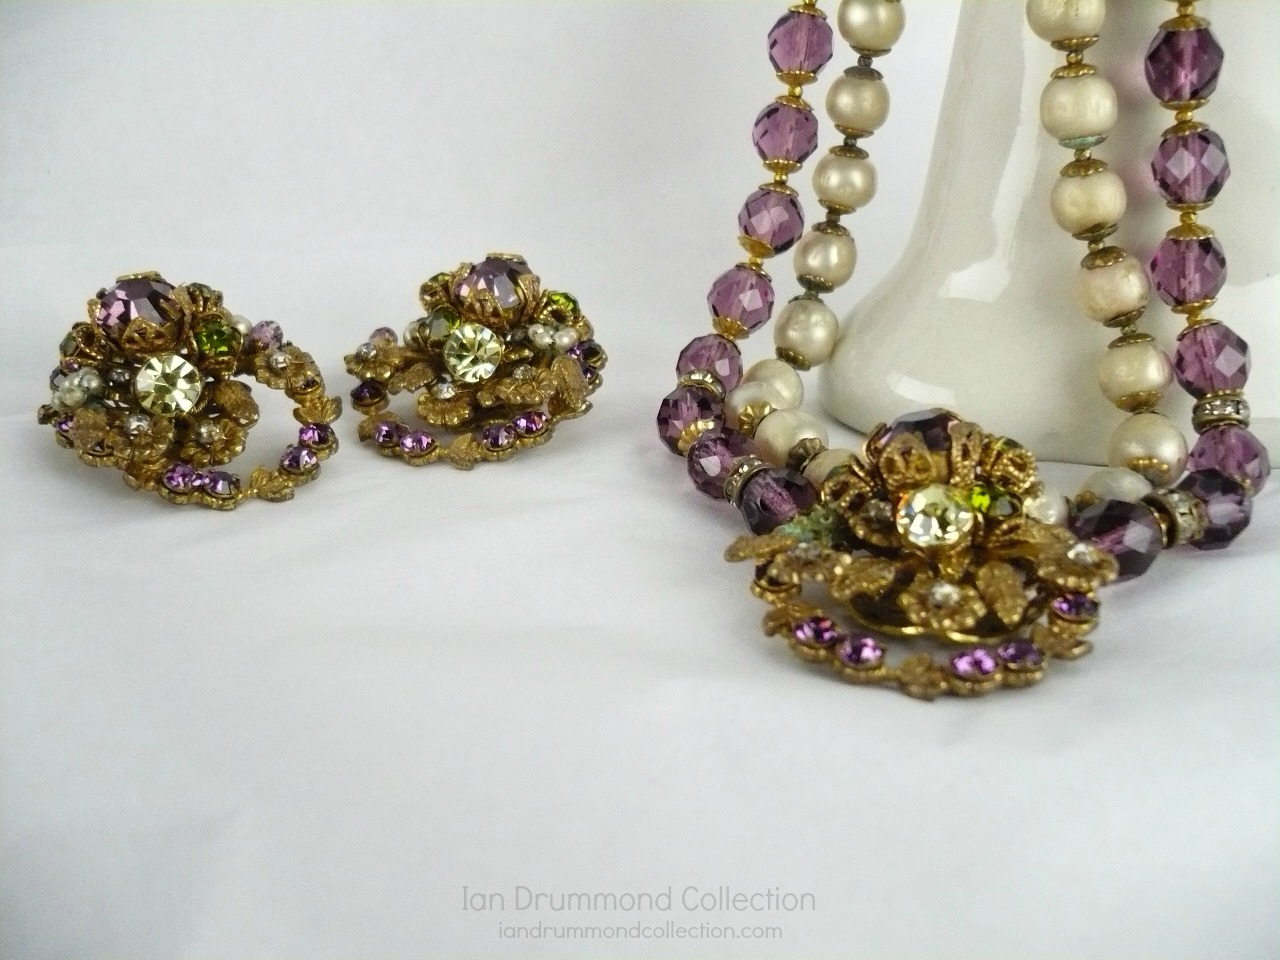 Ian Drummond Collection IDC Vintage Toronto Movie TV Wardrobe Rental jewellery 2 pc set DeMario 2